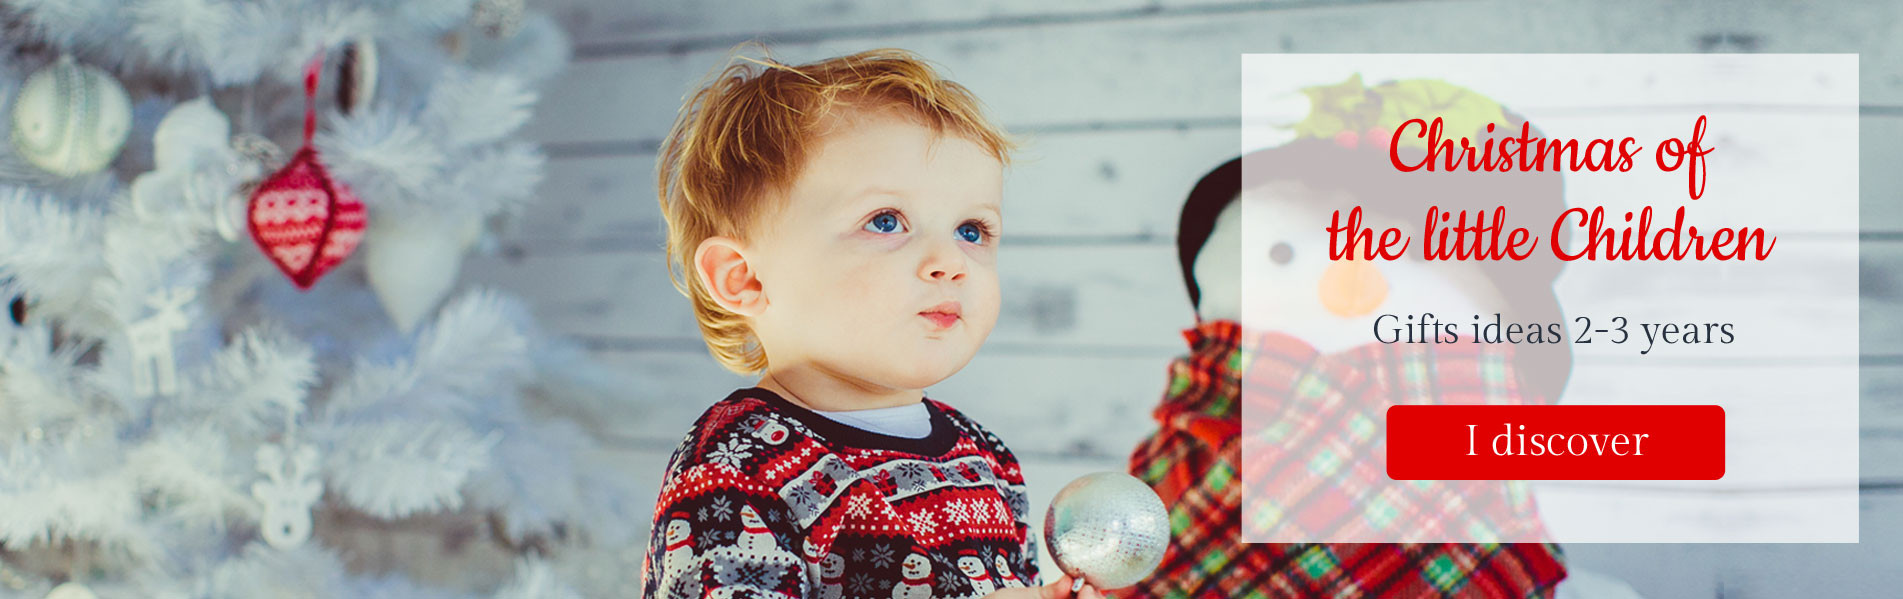 Gifts ideas 2-3 years